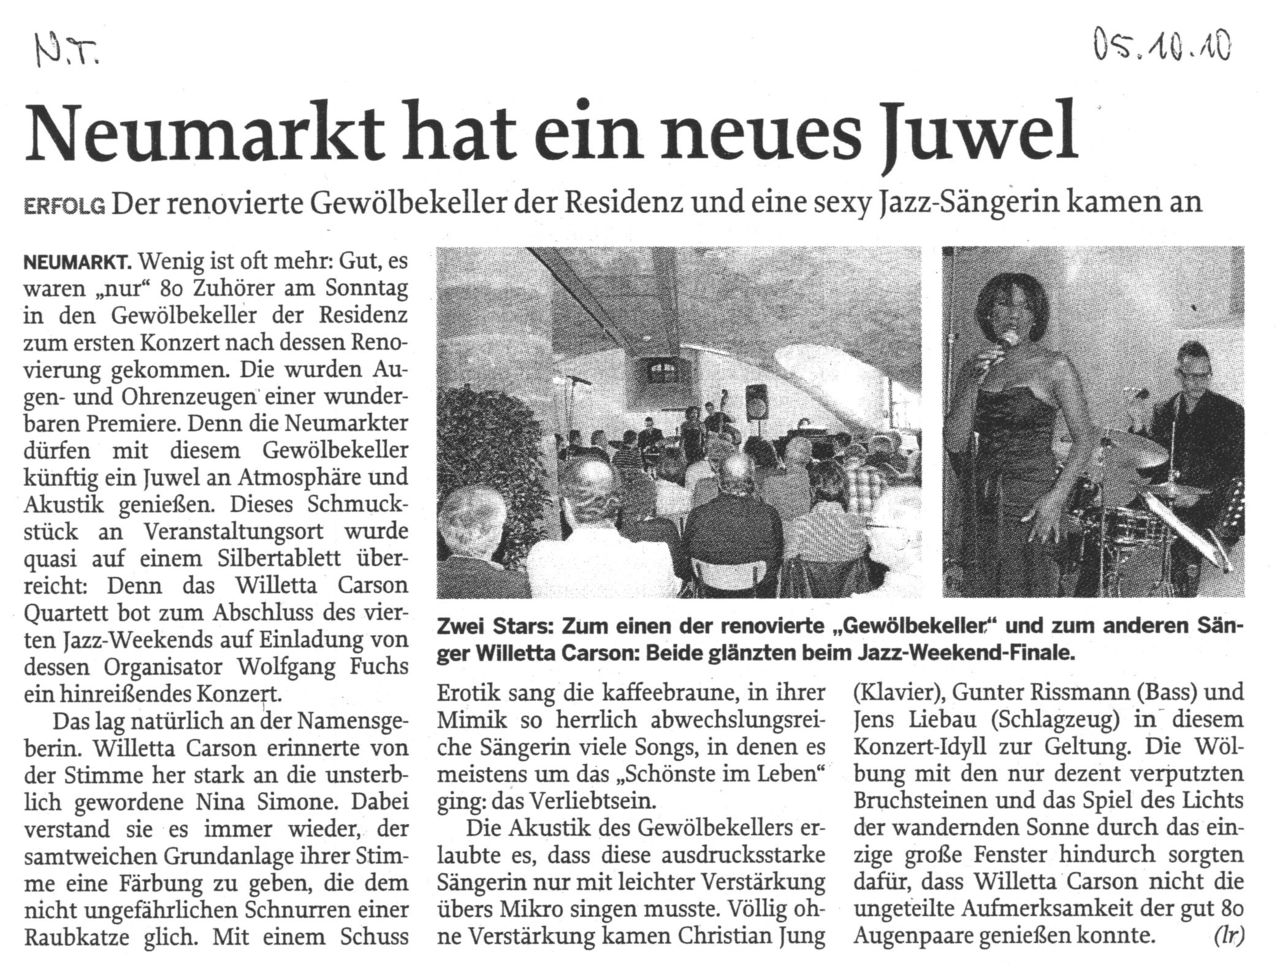 Neumarkter Tagblatt newspaper reviews the jazz matinee which concluded the 4. Neumarkt Jazz Weekend and where the Willetta Carson Quartet performed jazz, blues, soul and gospel within the historic building of the Neumarkt Residency; quote - Willetta Carson's voice reminded us of immortal Nina Simone. Willetta managed to give the velvet-like base tone in her voice sounds and colorations, that appeared to be close to the not so safe growl of a wild cat. - quote end